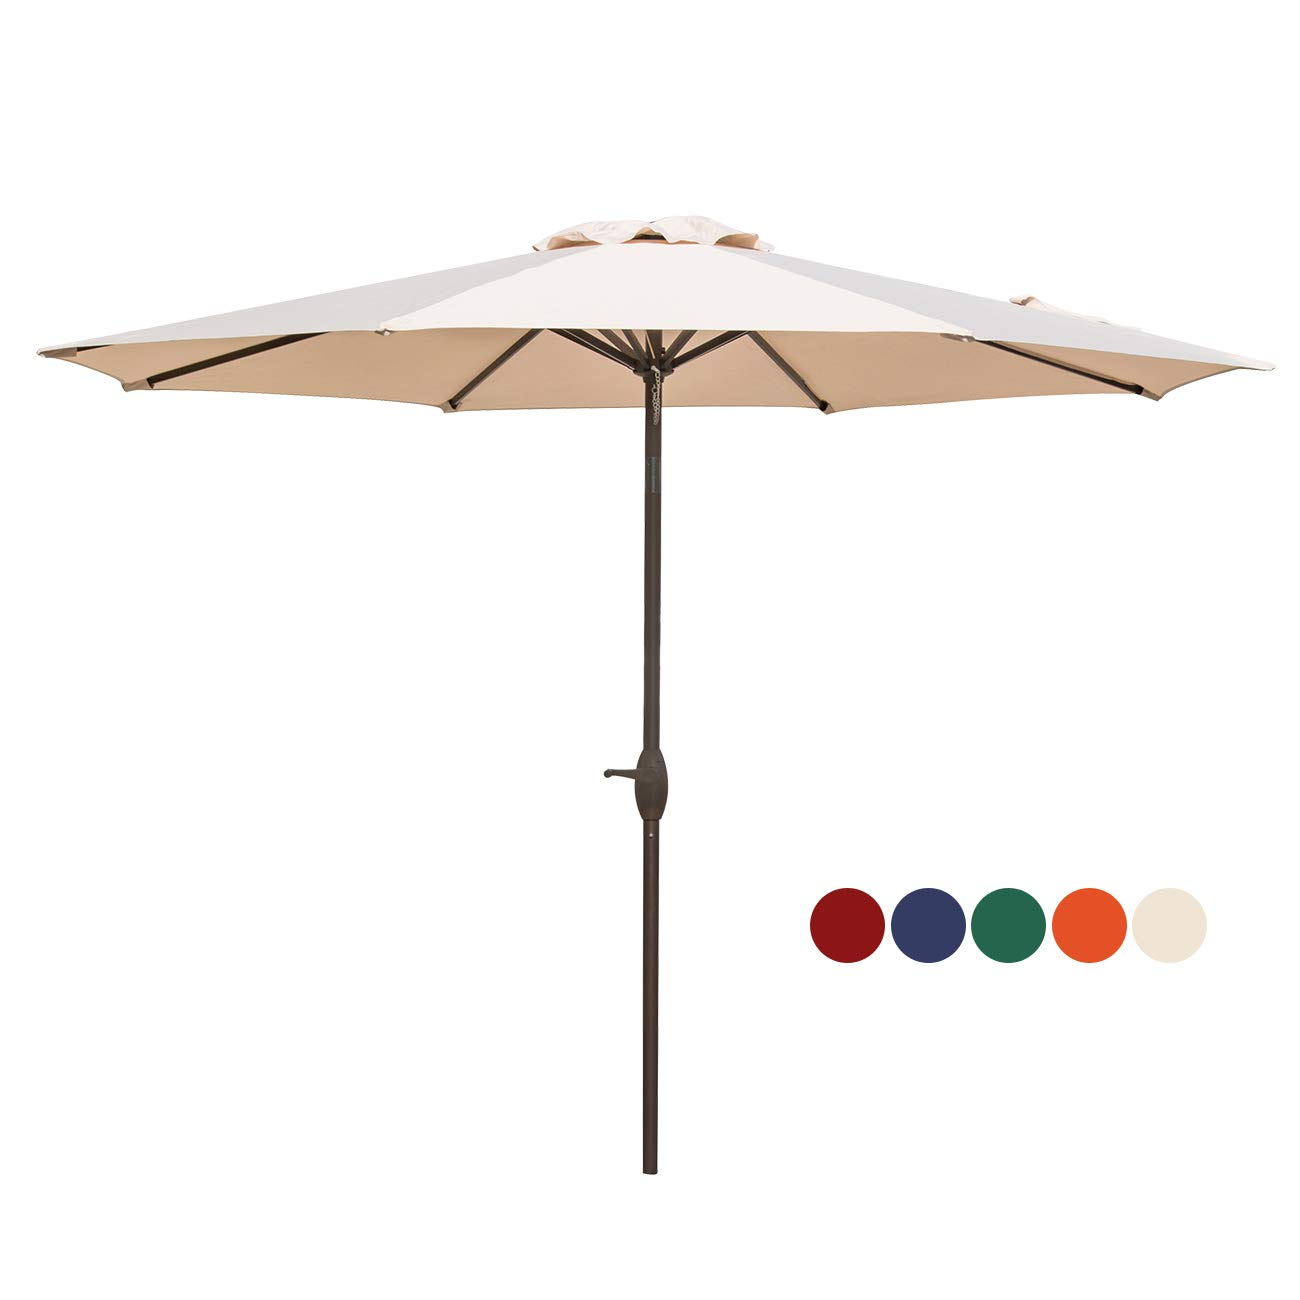 HASLE OUTFITTERS Patio Umbrella 9FT Table Umbrella Outdoor Market Umbrella with Tilt Adjustment and Crank Lift System Beige